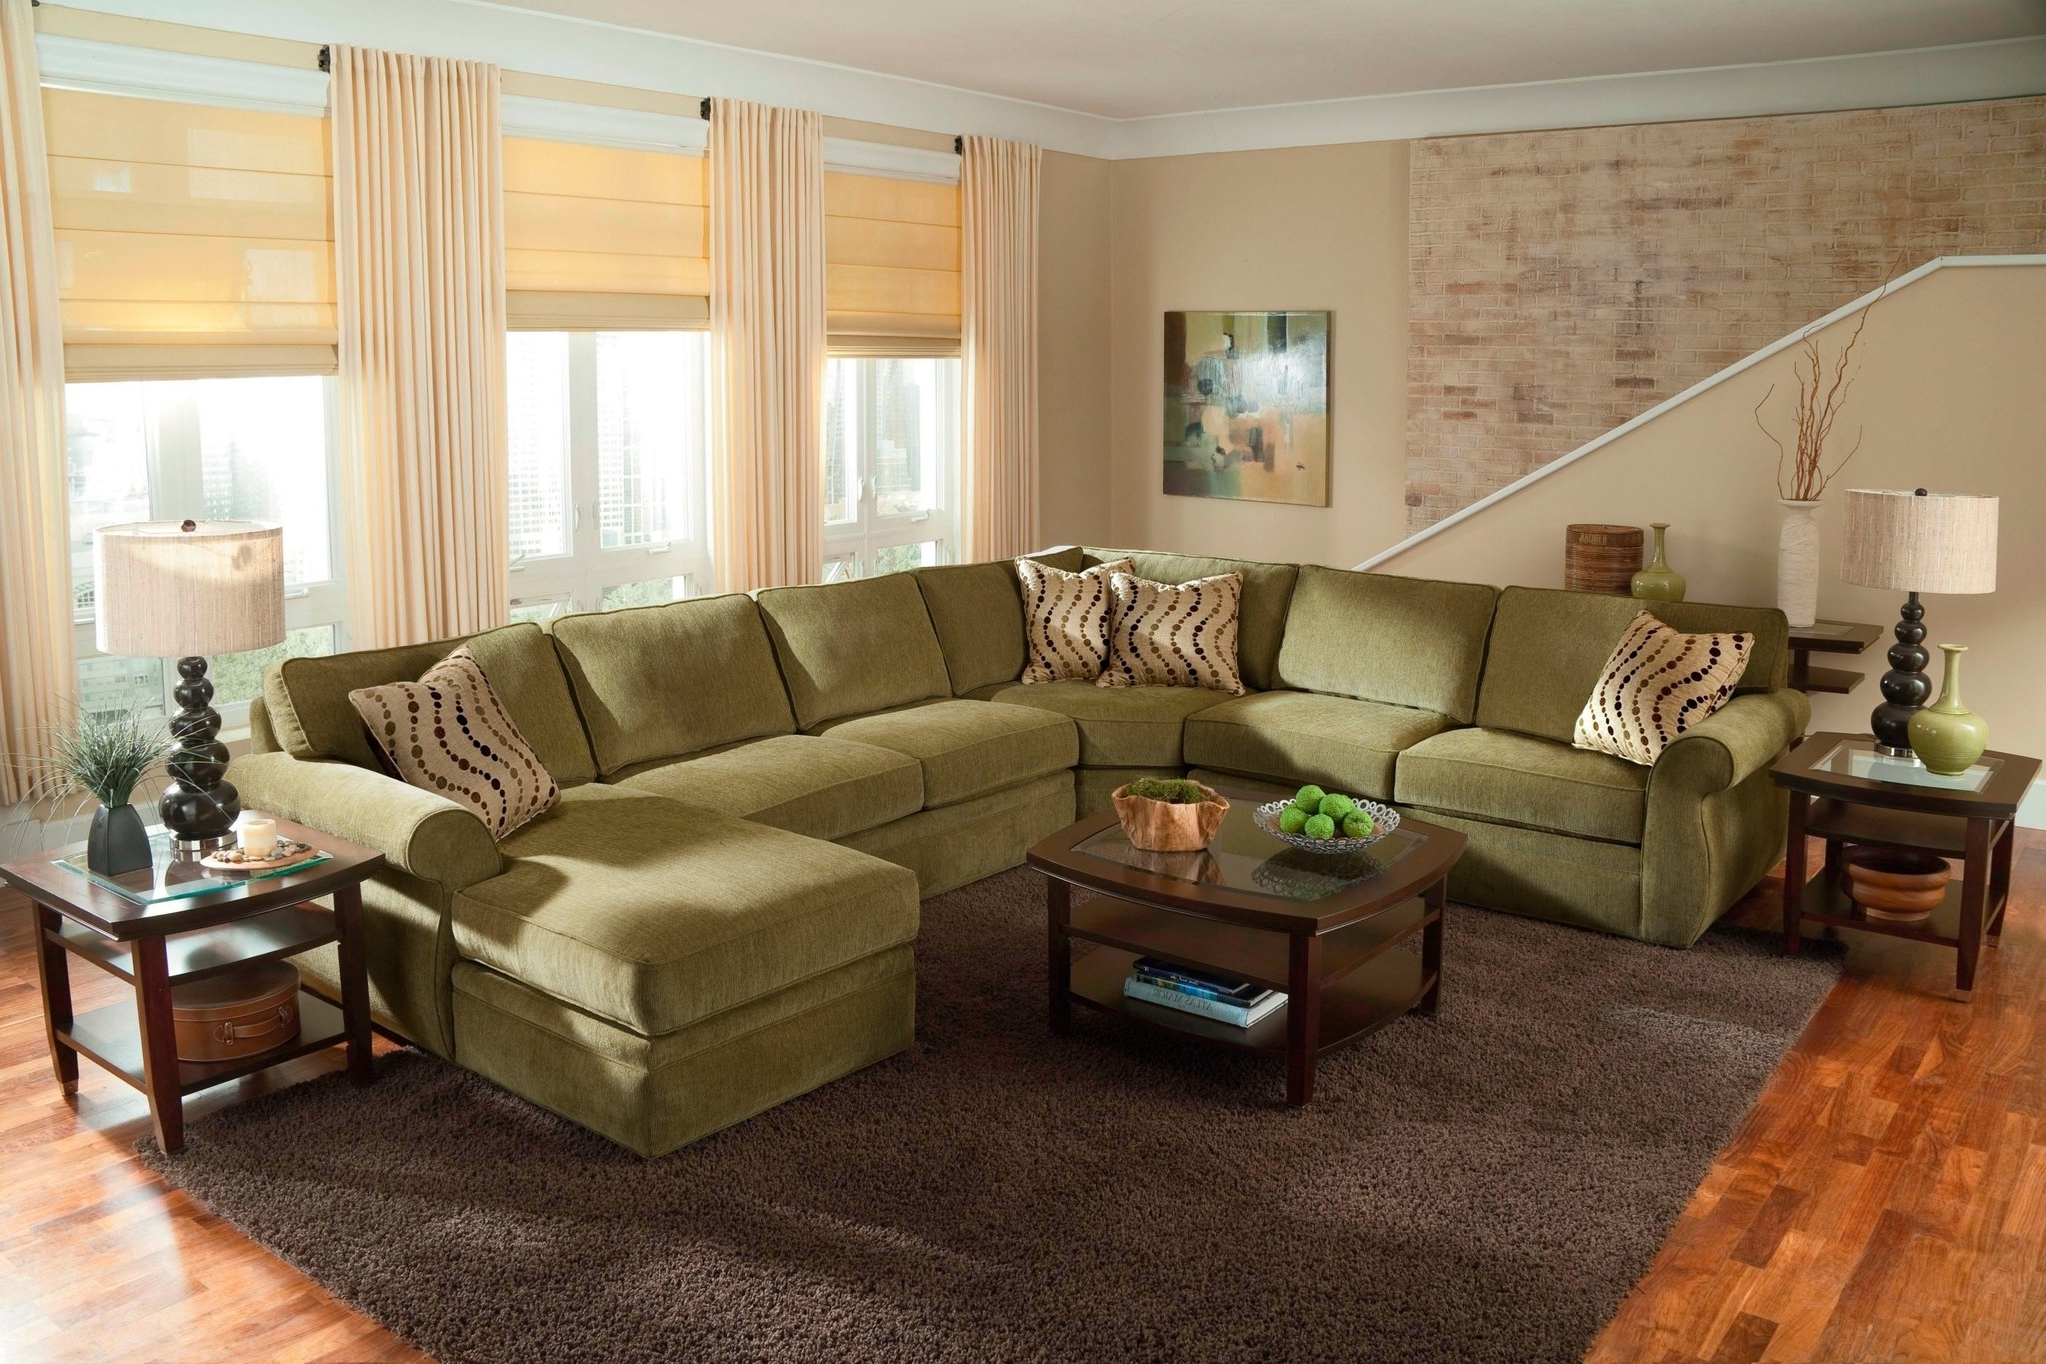 Aifaresidency Intended For Newest Huge U Shaped Sectionals (View 8 of 15)